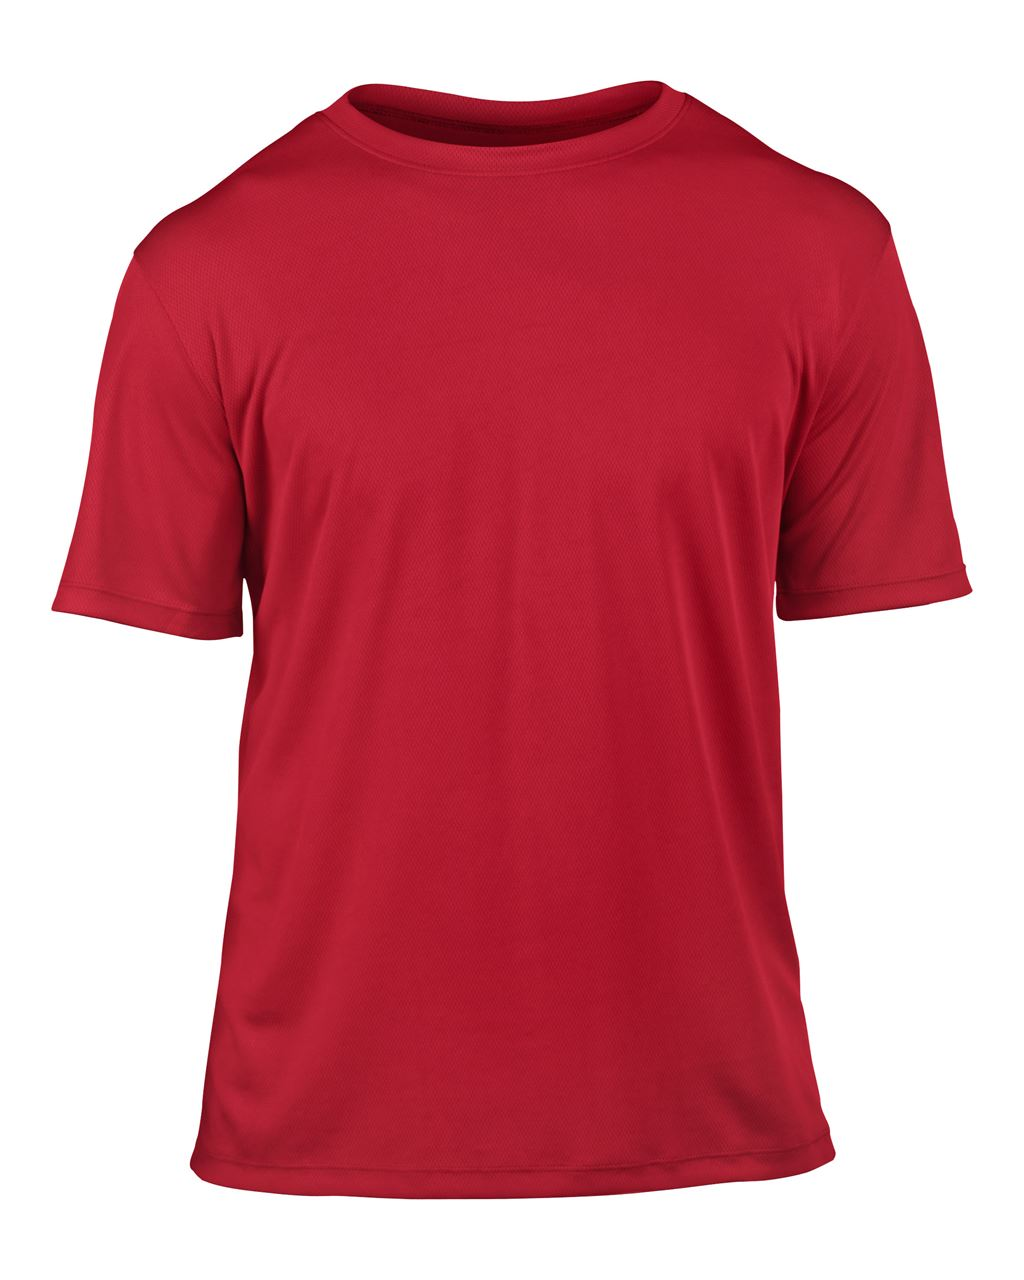 0014785_new-balance-ndurance-athletic-t-shirt